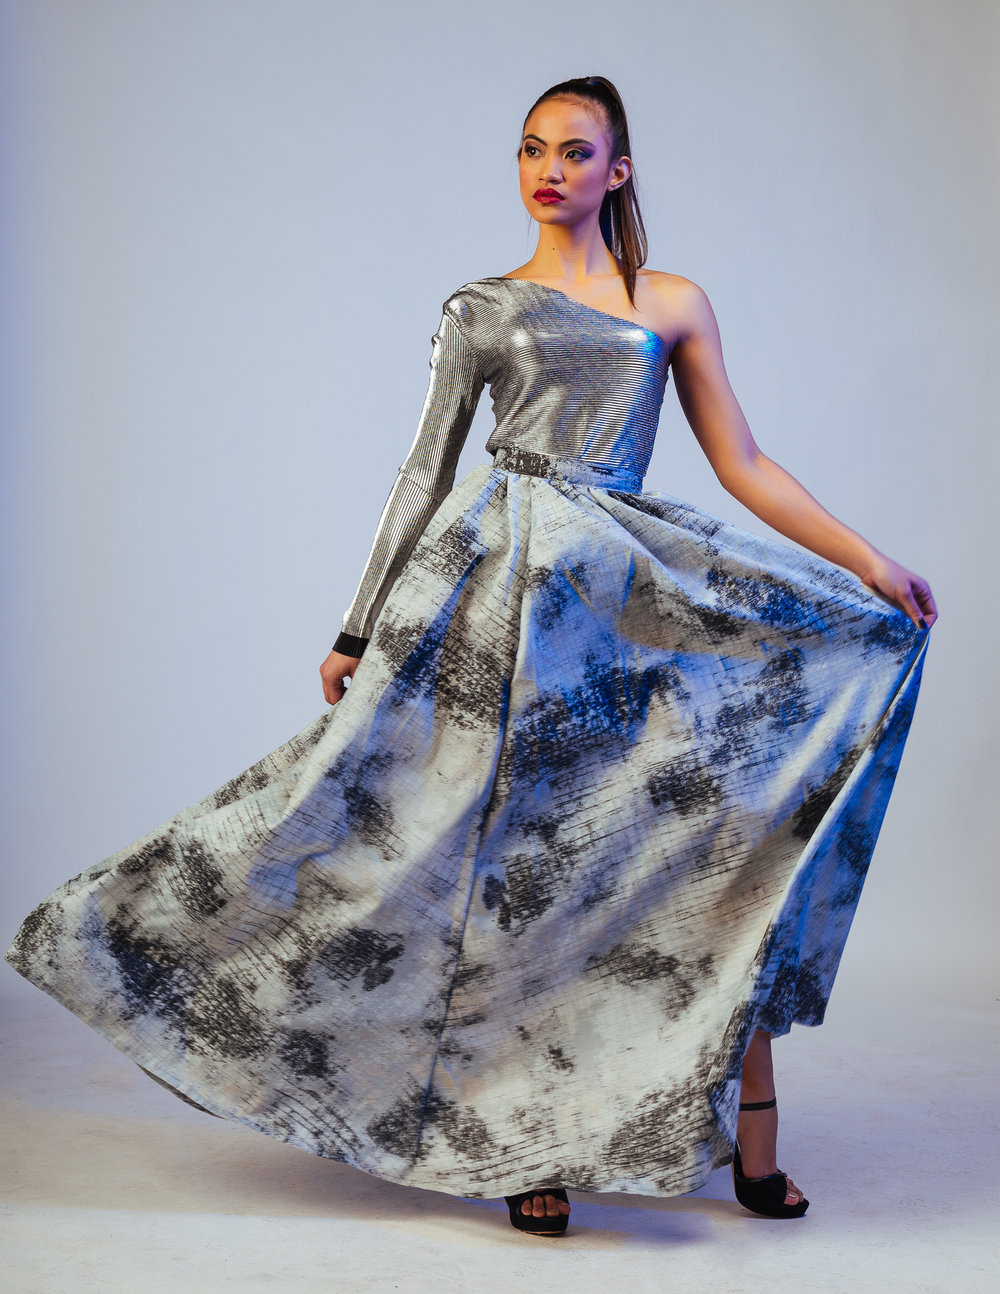 Top and Skirt: The Amme Collection  Model: Jacqueline Paras  Photography: Aaron.Hx  MUA: Beauty By Humaira